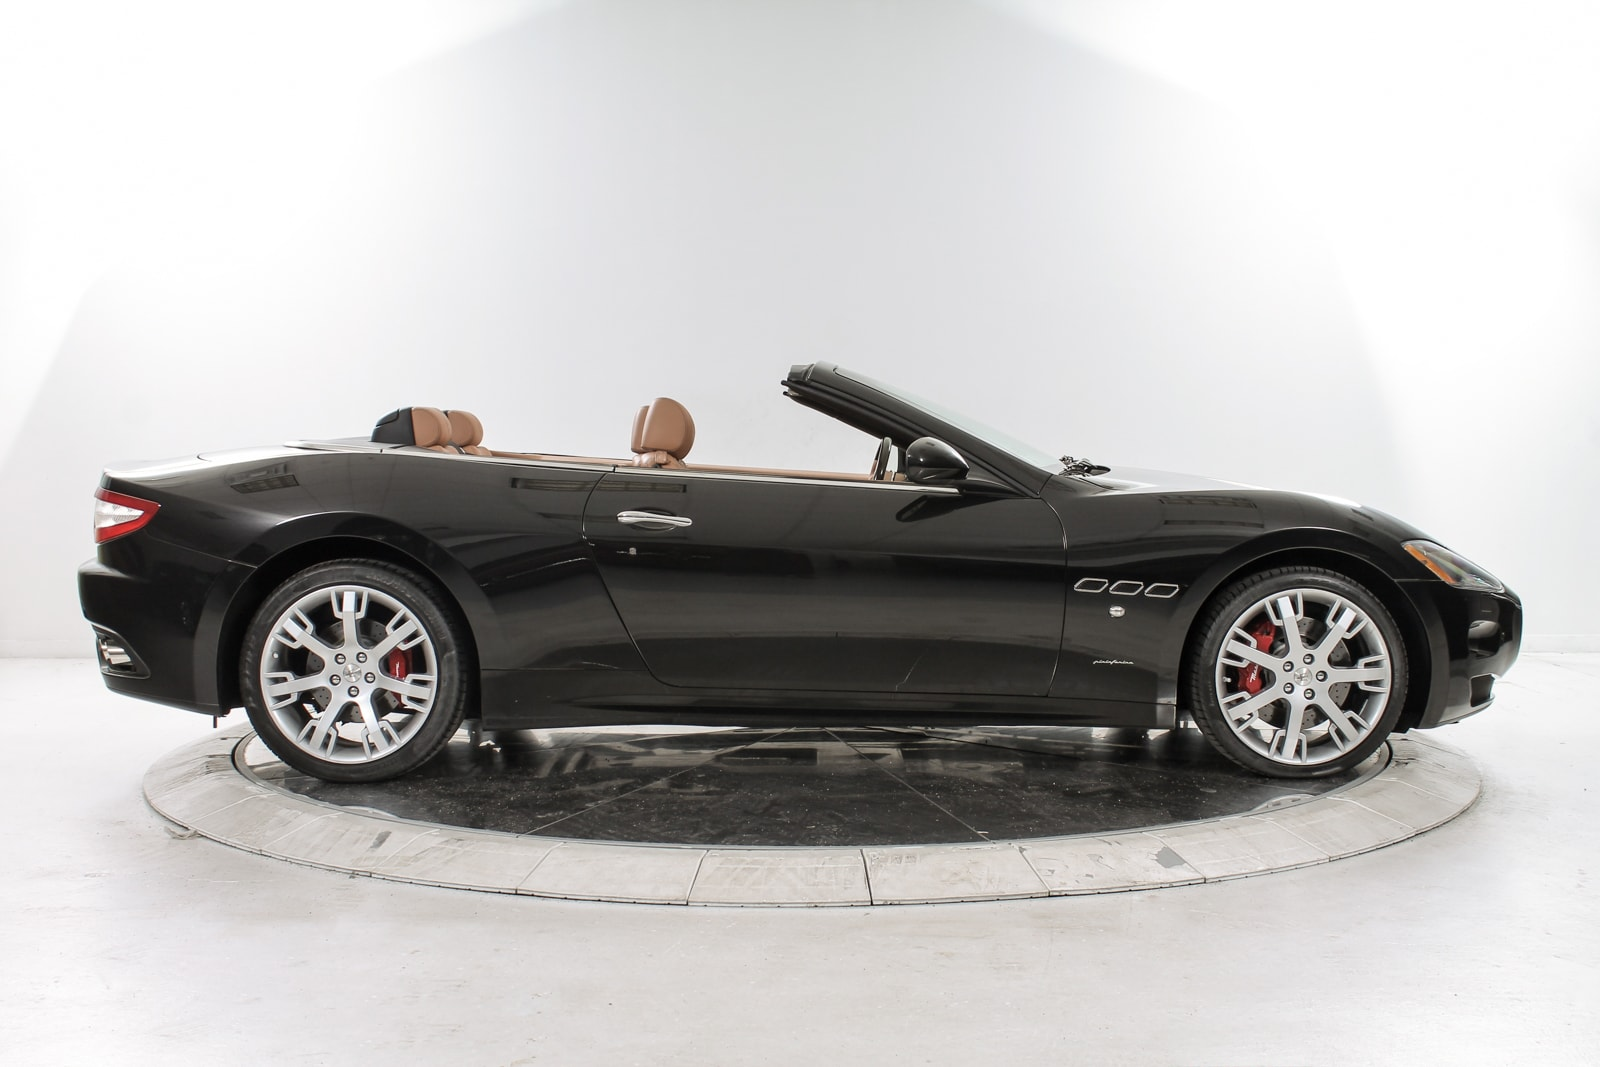 Used 2012 Maserati Gt Convertible In Black For Sale In Nyc